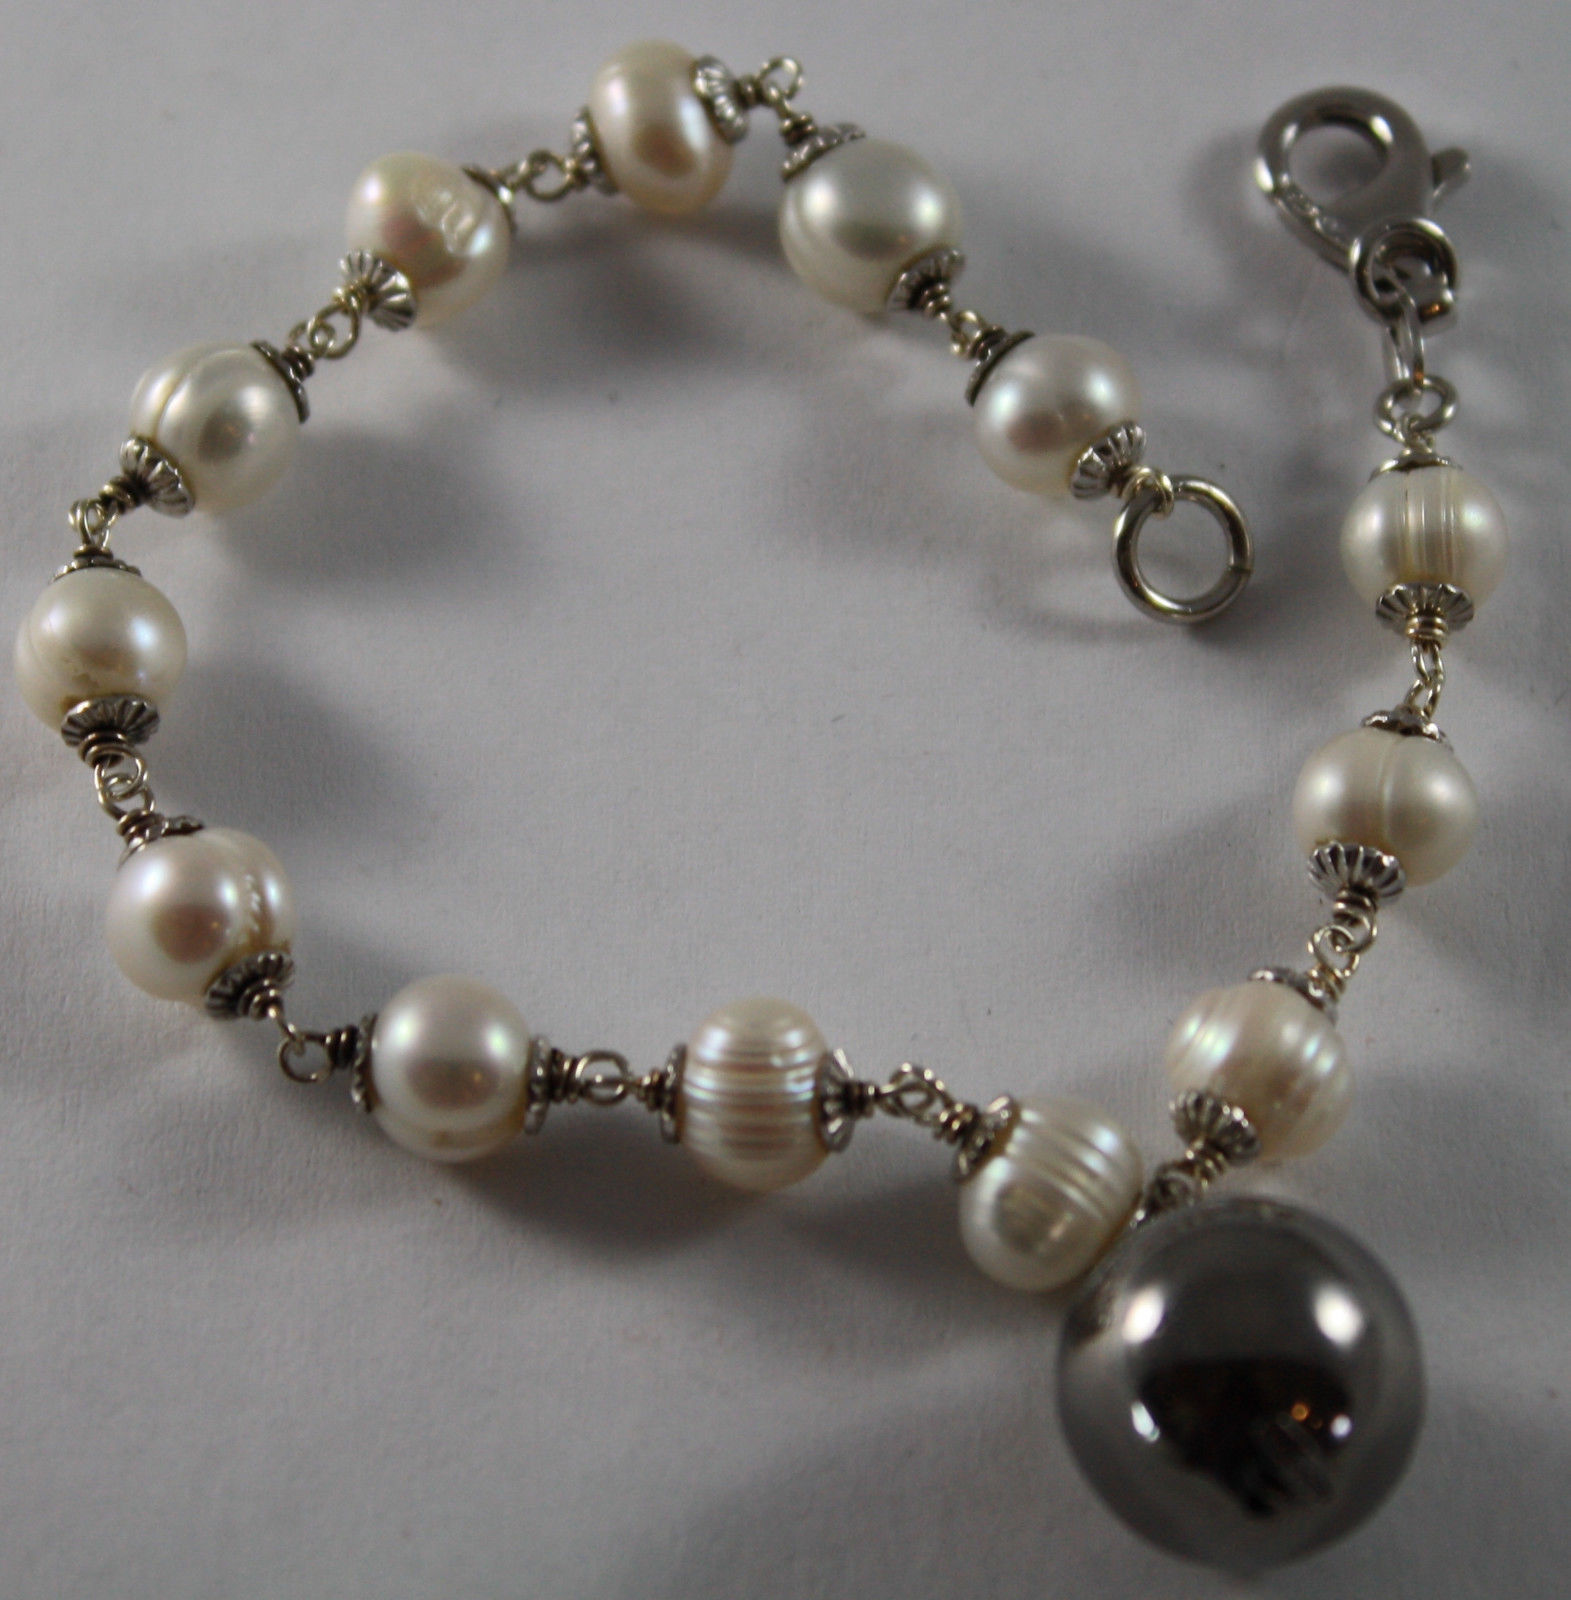 .925 RHODIUM SILVER BRACELET WITH FRESHWATER WHITE PEARLS AND BURNISHED SPHERE